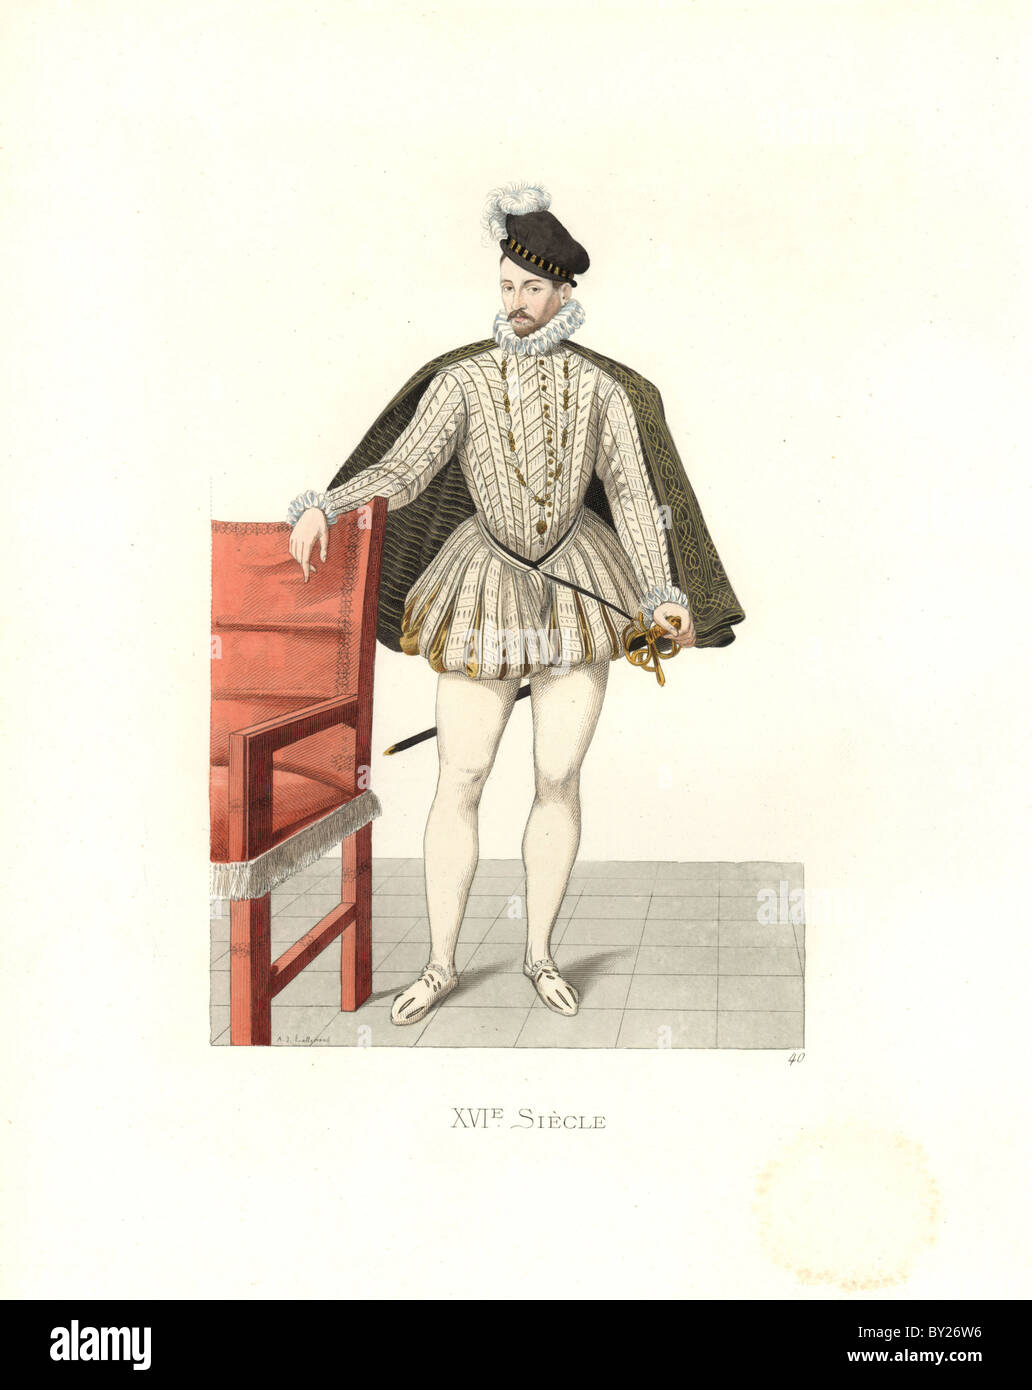 King Charles IX of France (1550-1574) - Stock Image